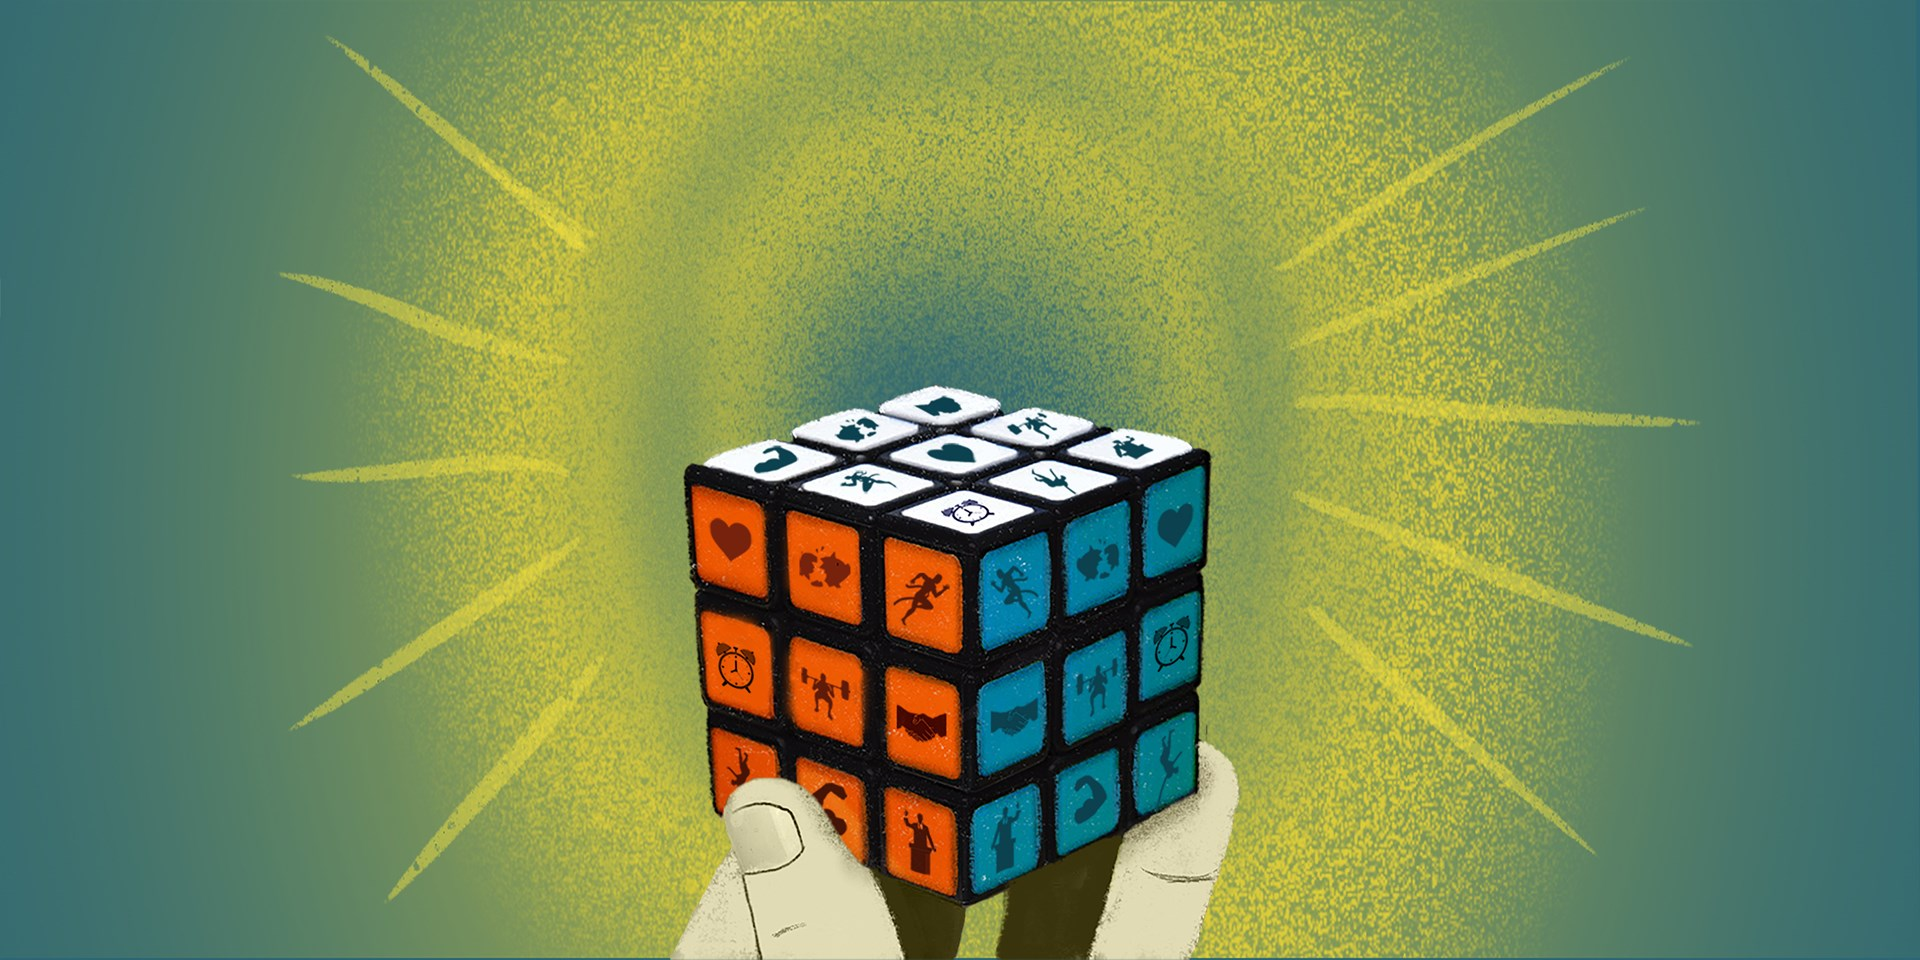 Illustration of a solved puzzle being held up